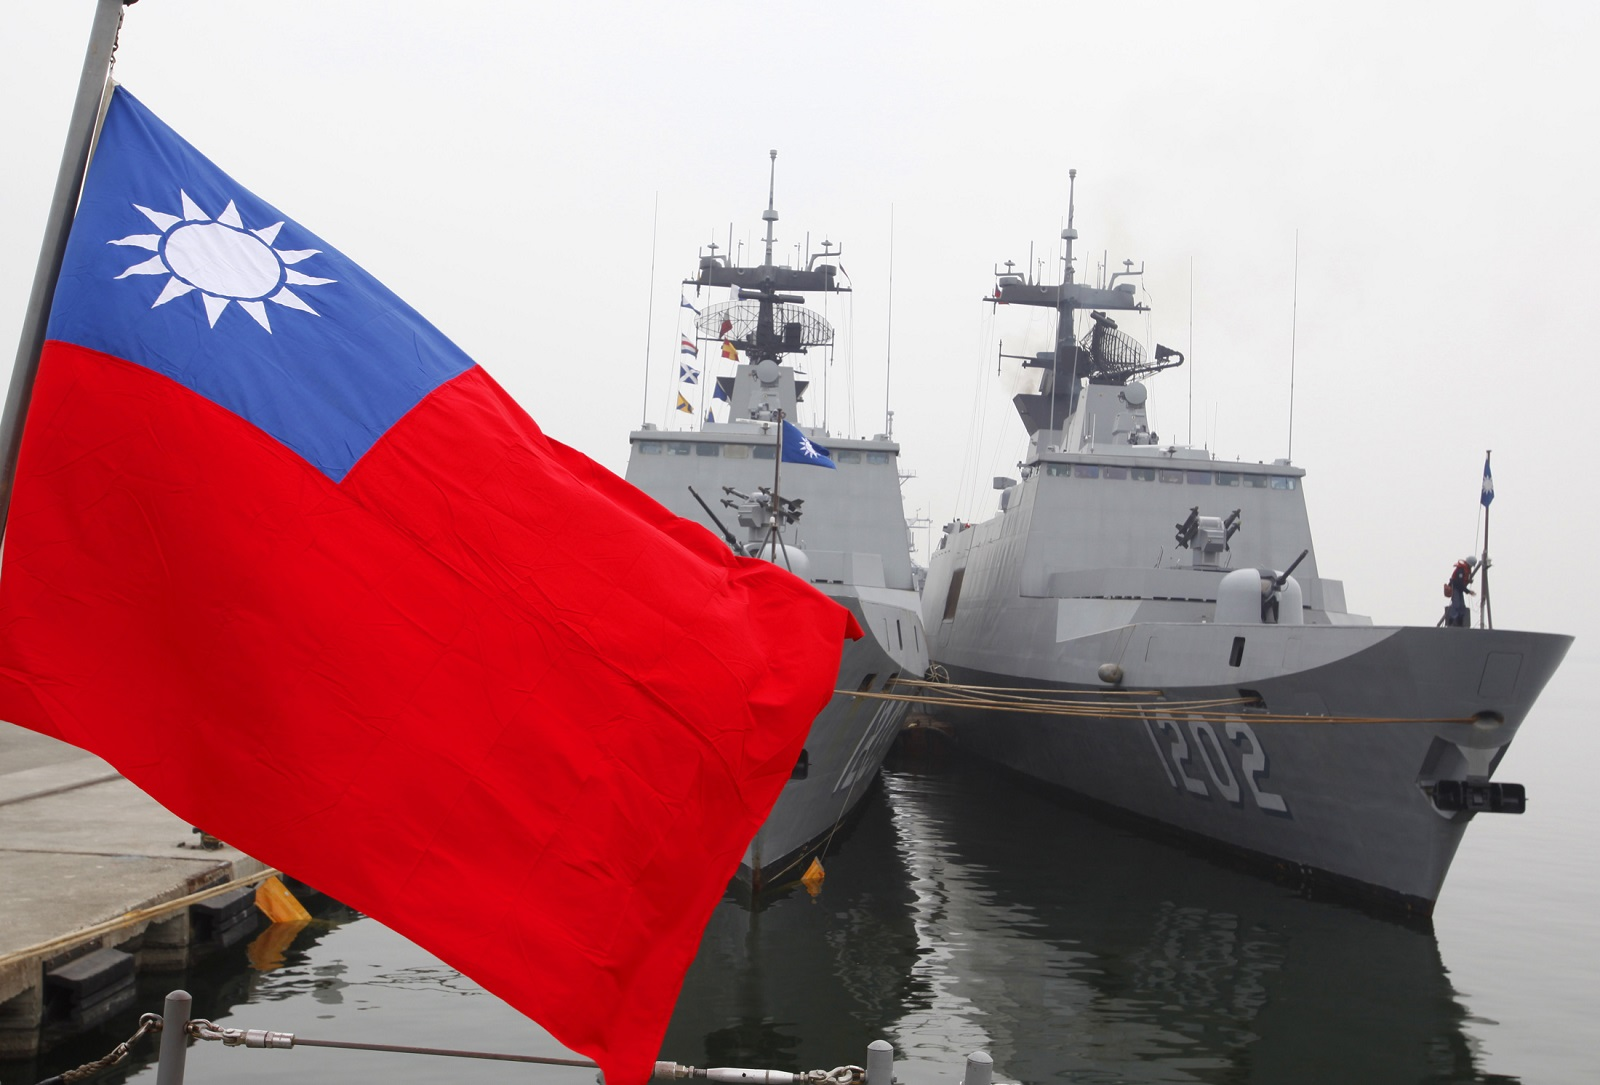 Taiwan Conducts Five Day Live-Fire Exercises Simulating Repelling Chinese Invasion